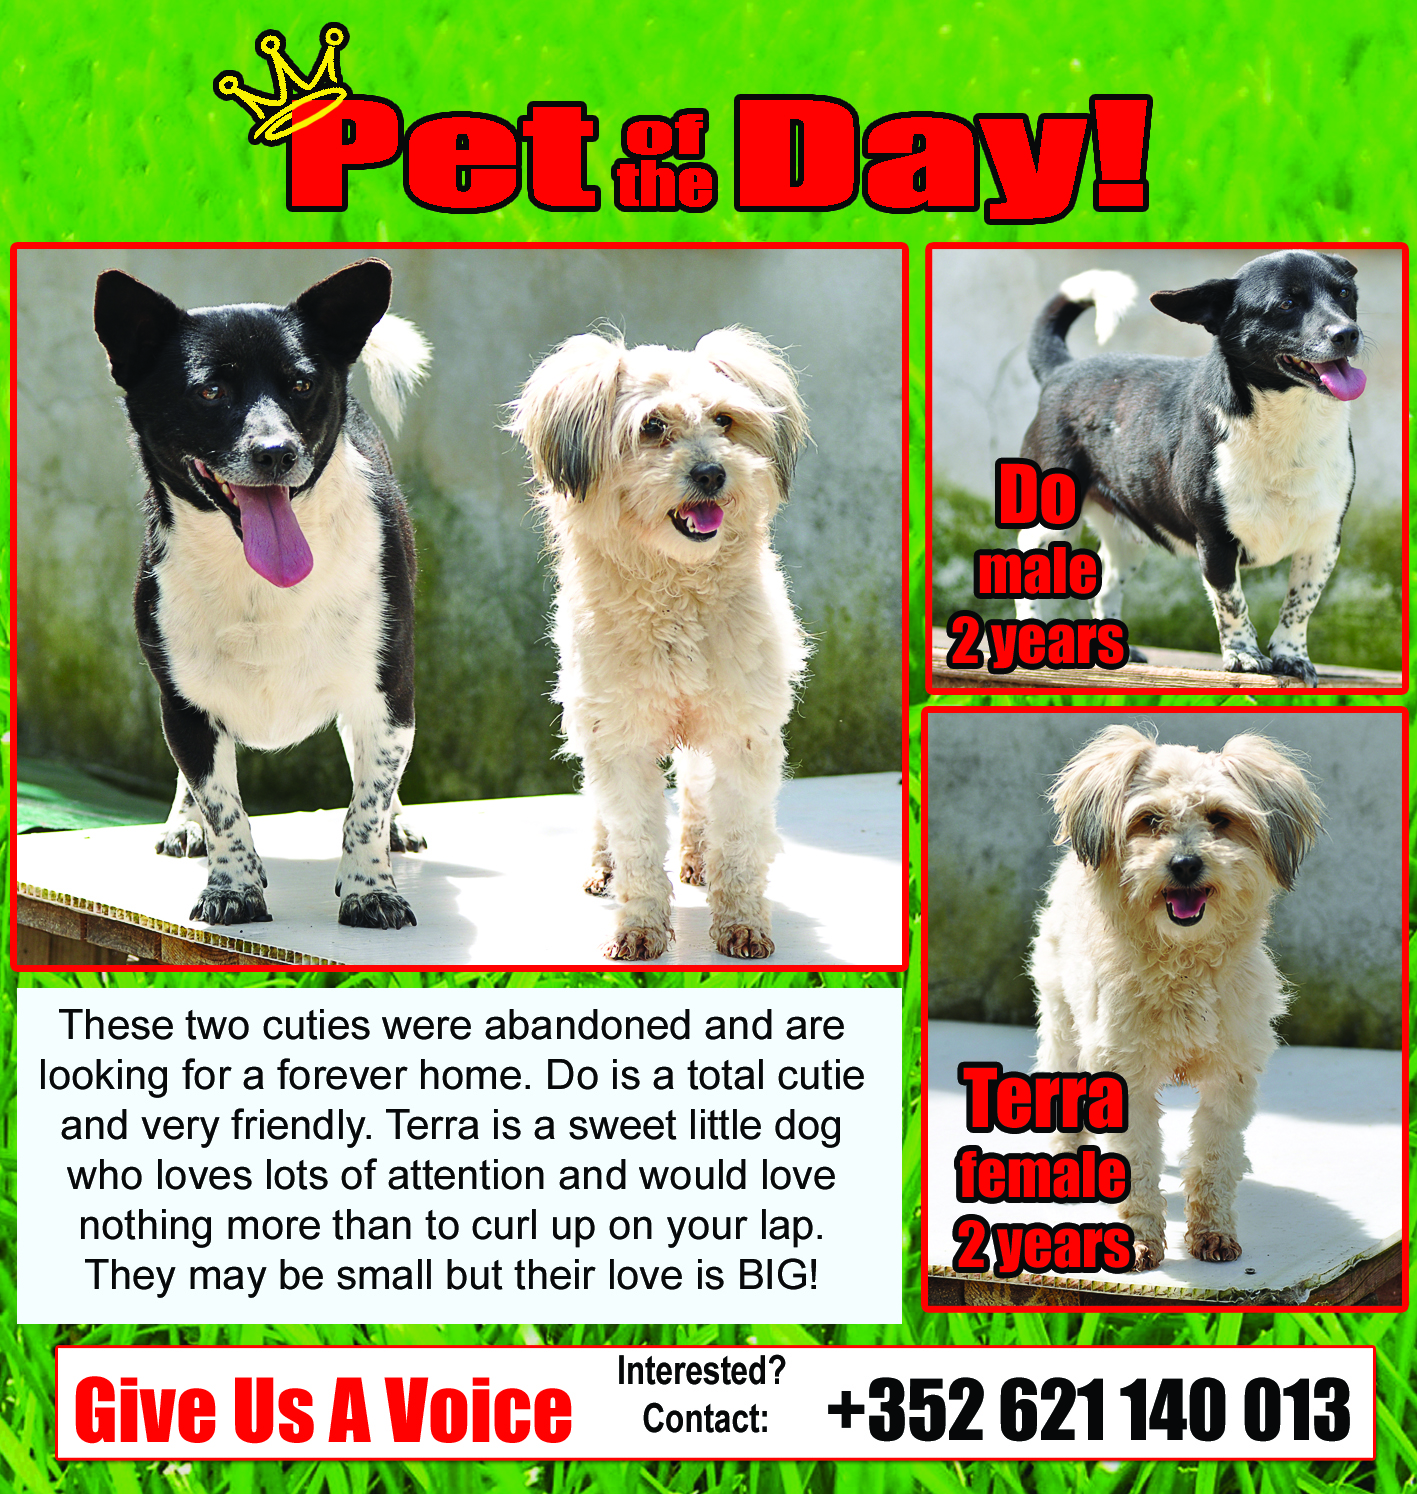 05-13-16 Pet of the Day